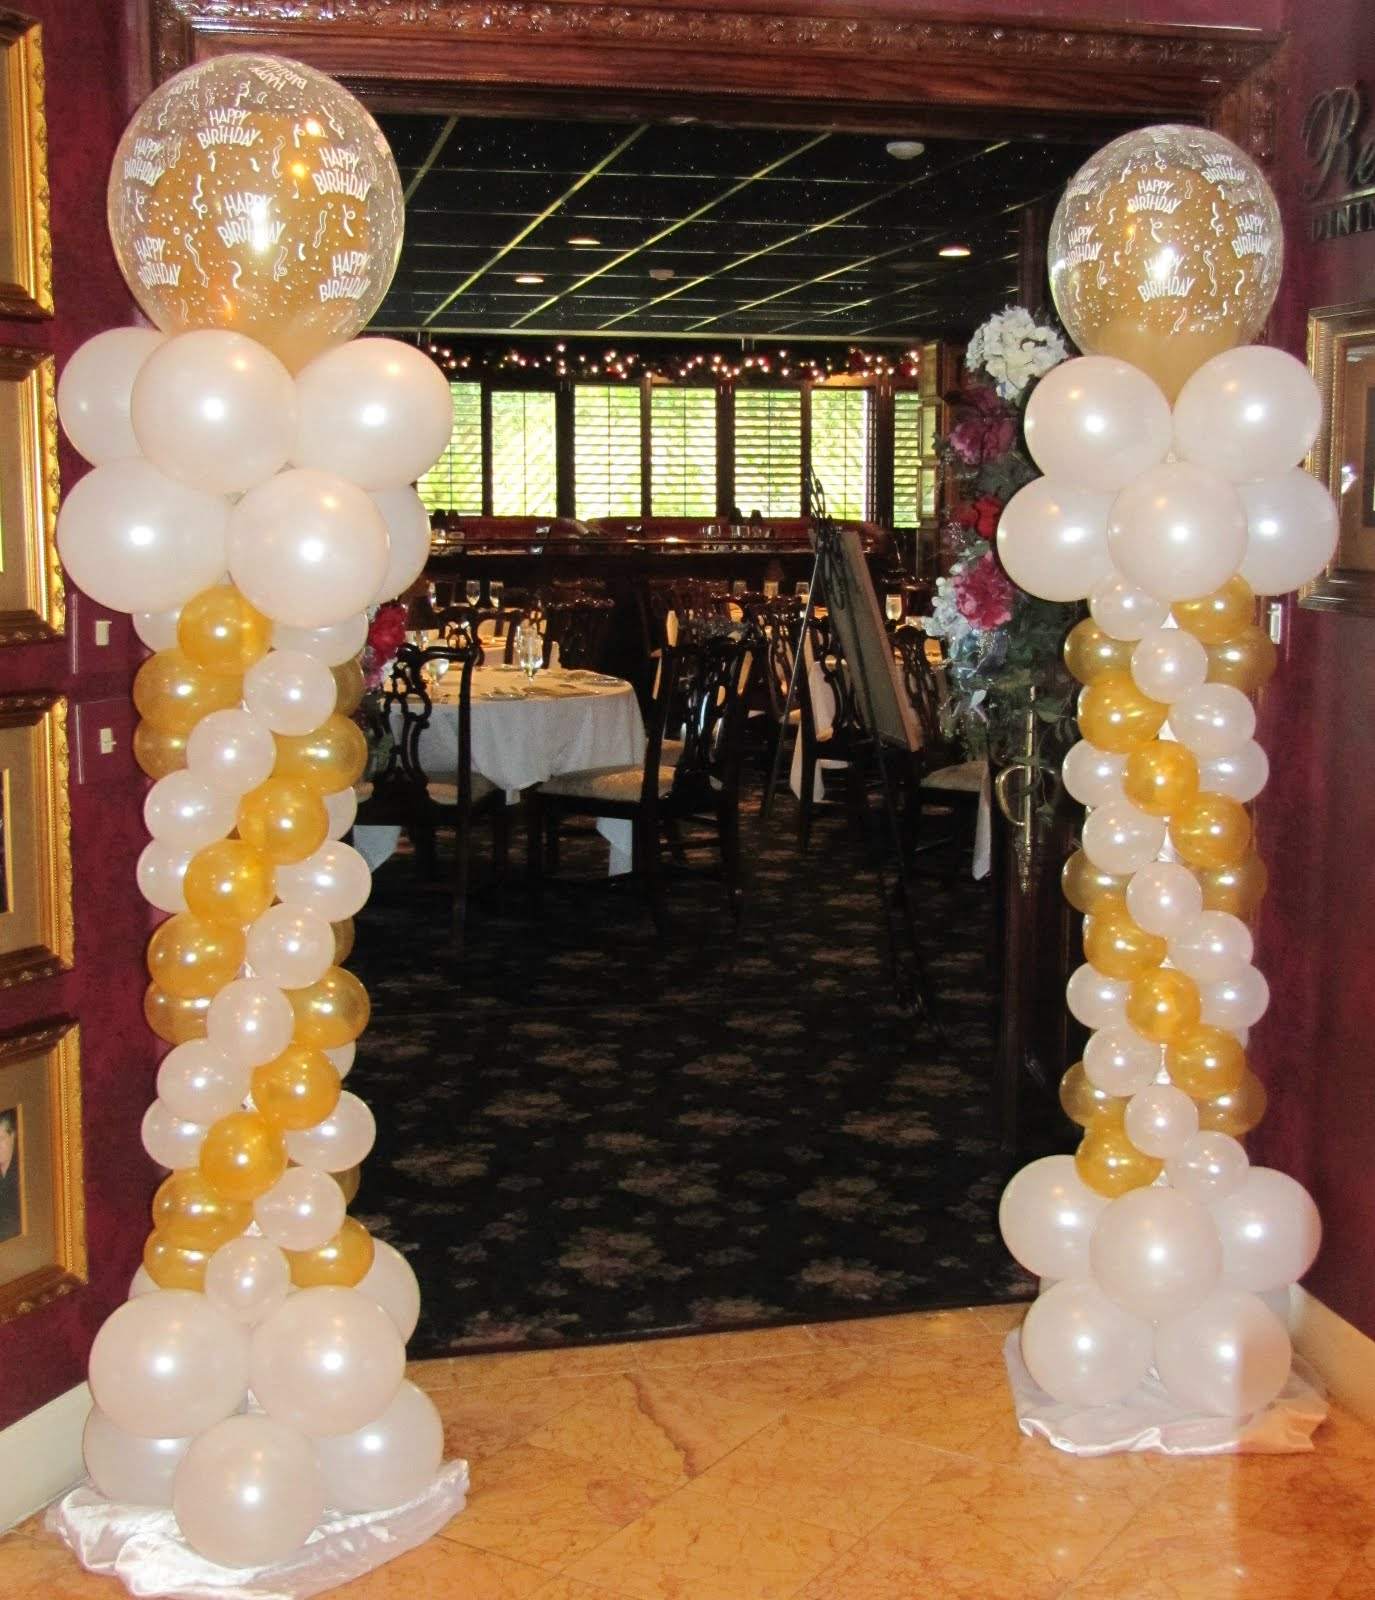 Party People Event Decorating Company: 50th Birthday